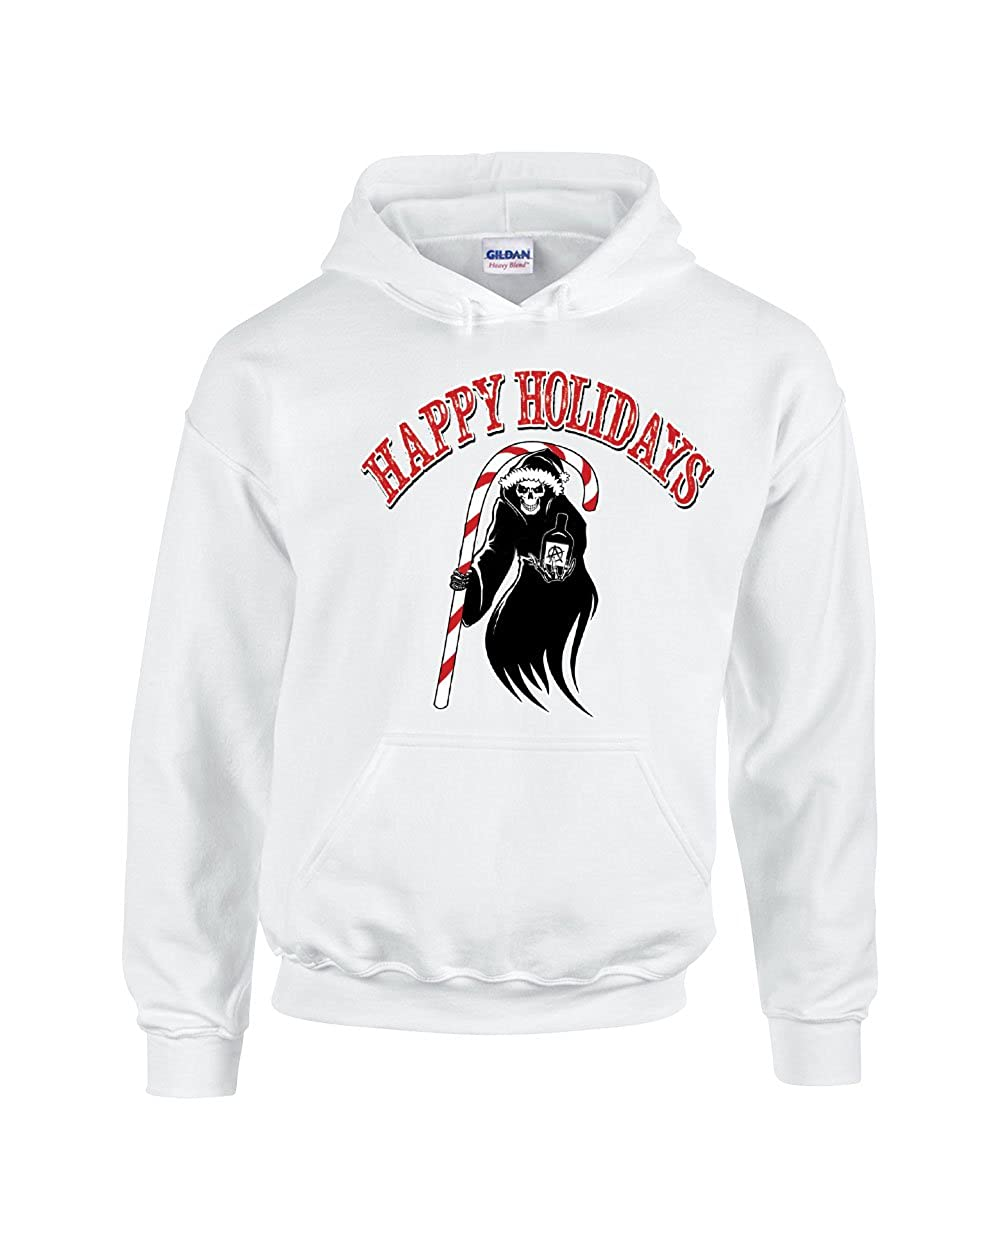 Hoodies for Women Men Happy Holiday Witch and Candy Sticks Xmas Ugly Sweatshirts